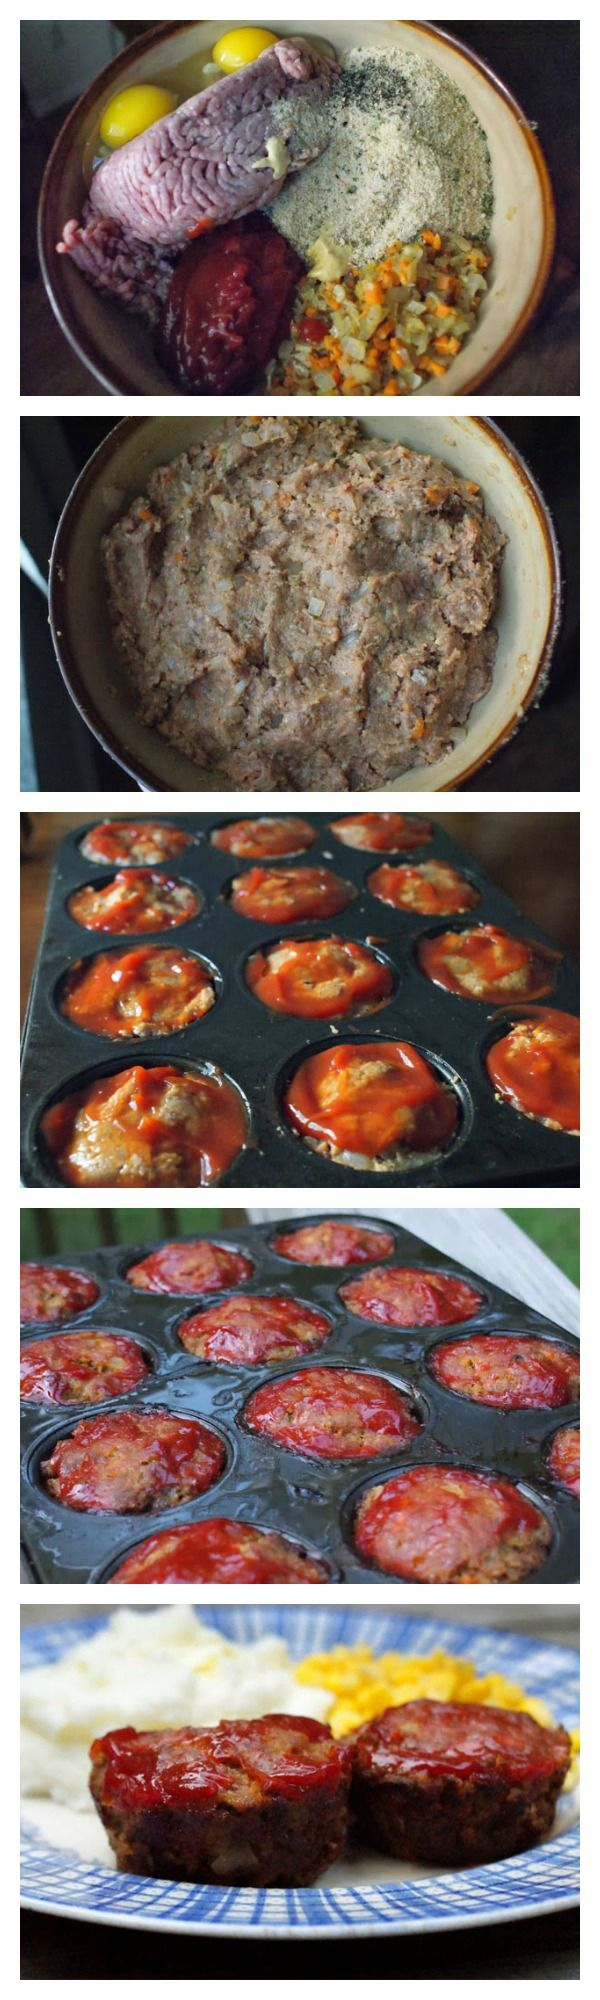 Meatloaf Muffins   Perfect for busy school nights - they cook in just 25 minutes!   thetwobiteclub.com